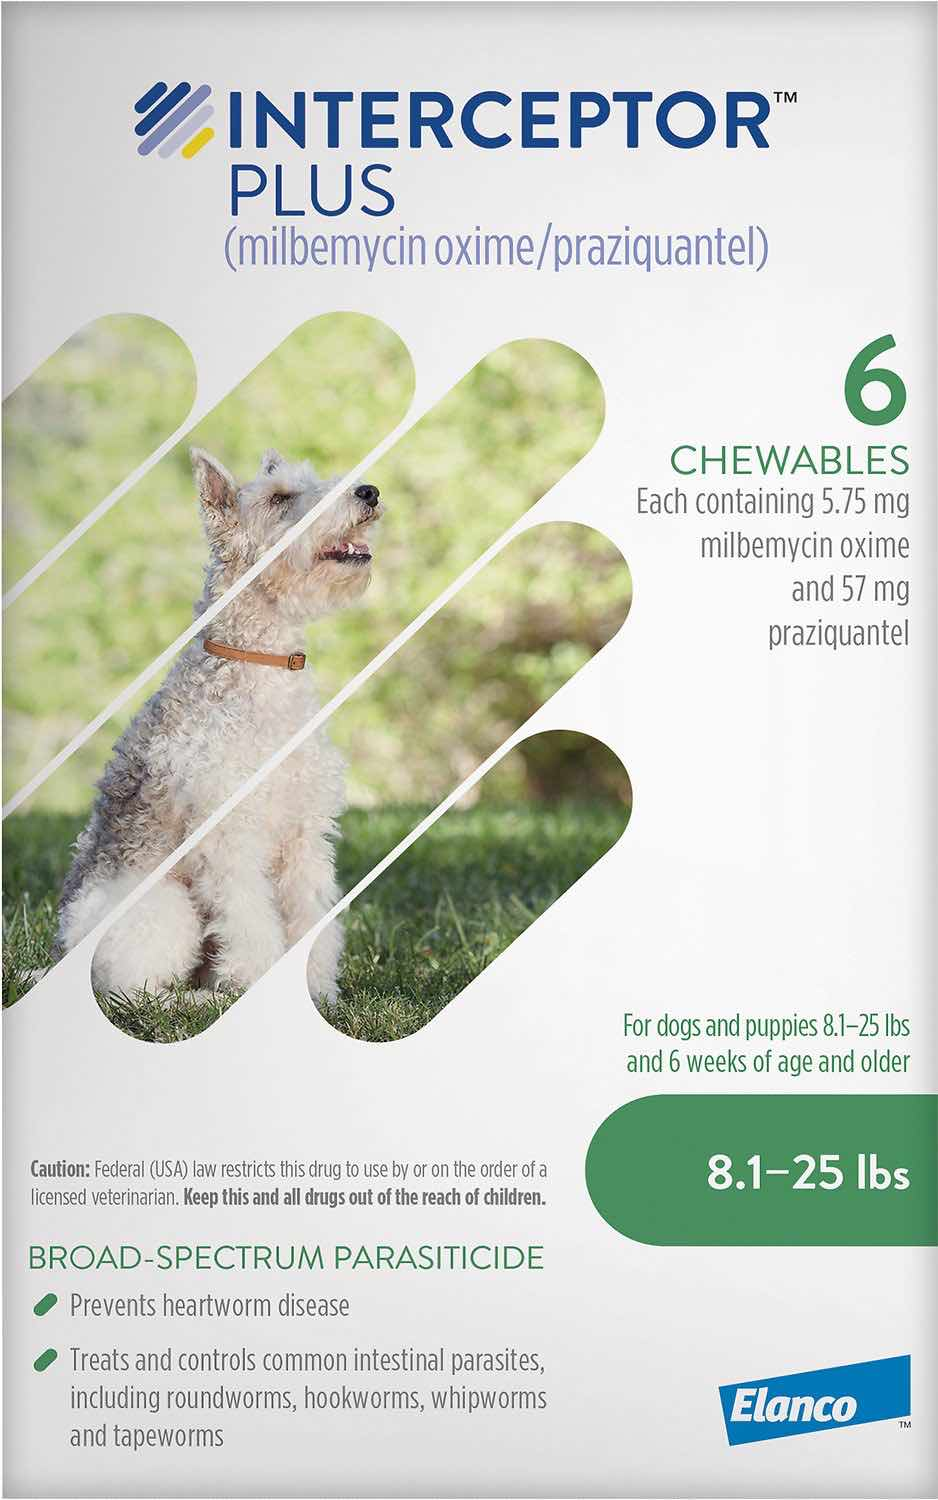 Interceptor Plus 6 chewables for dogs 8.1-25 lbs (Green) 1